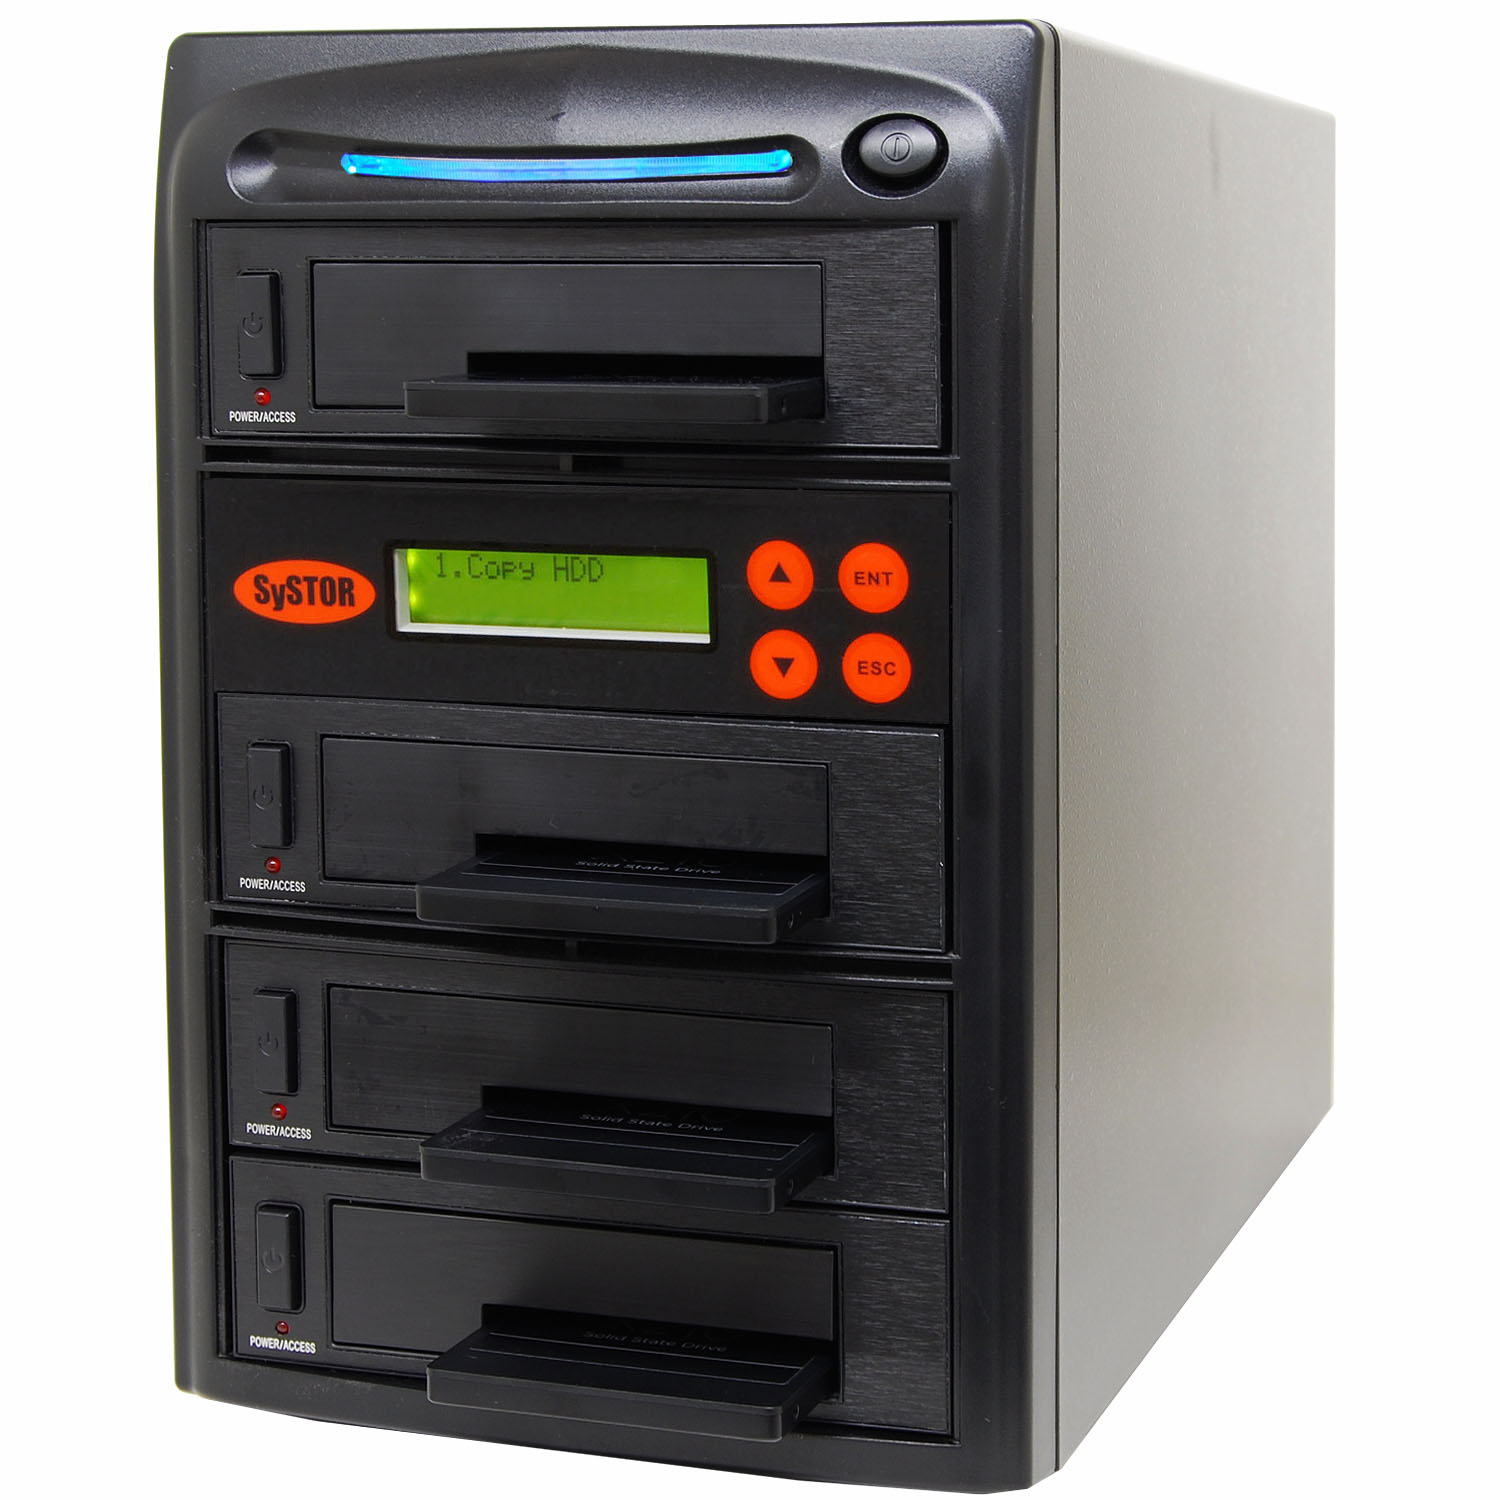 3 Hard Drive/Solid State Drive (HDD/SSD) Duplicator